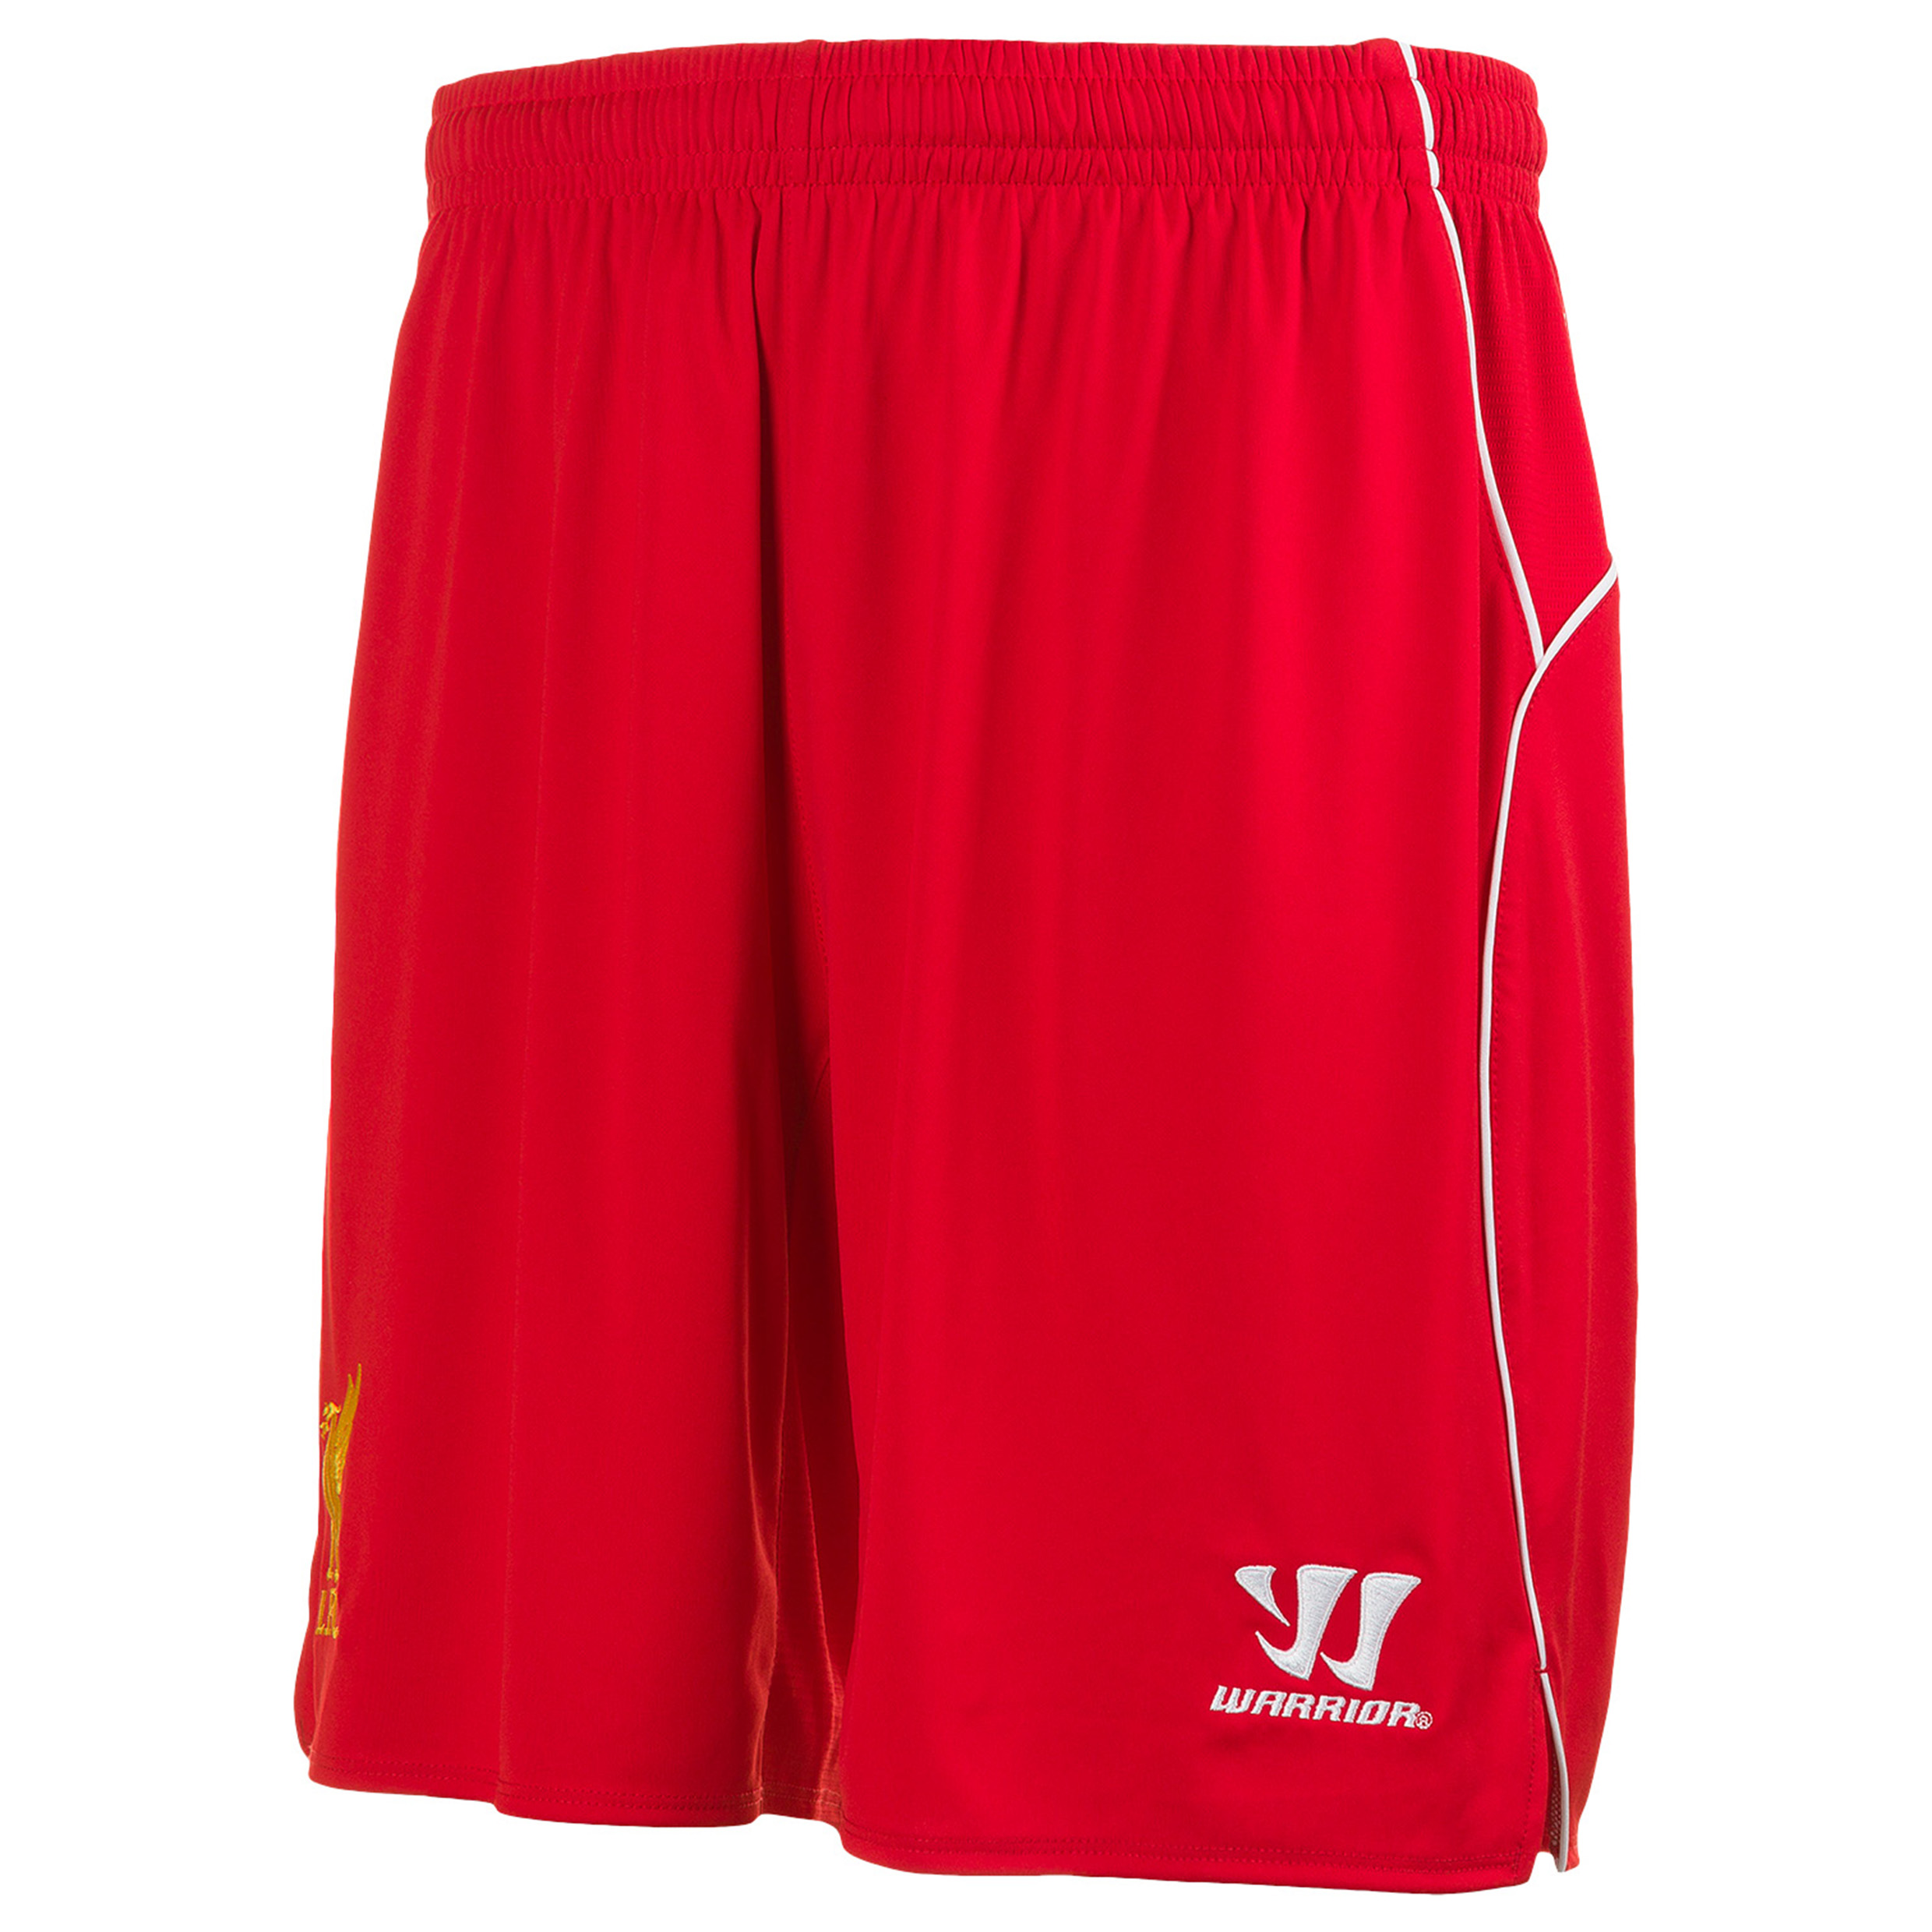 Liverpool Home Shorts 2014/15 Red - Kids